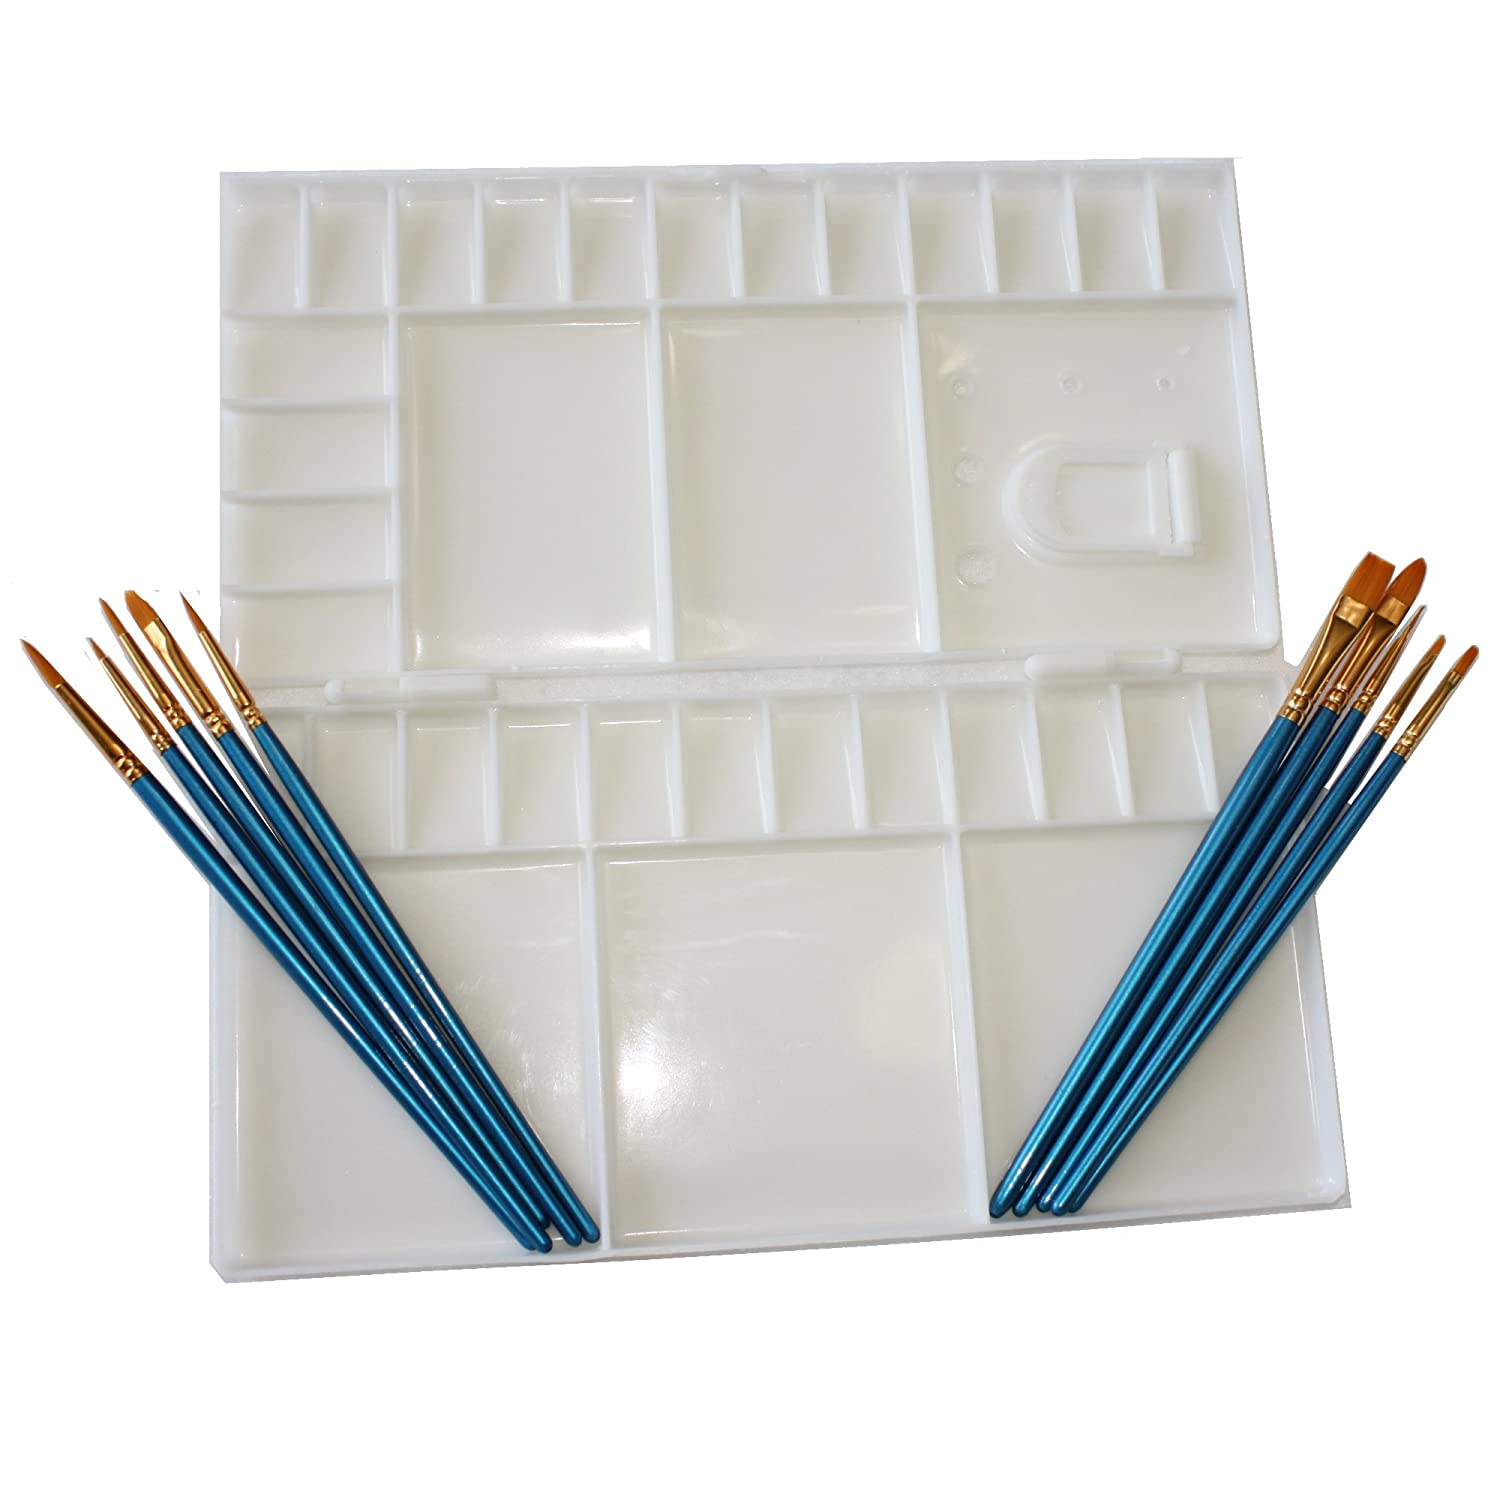 Large Folding watercolor palette with 33 mixing wells, Palette folds in half to for enclosed Palette, and 10 piece Nylon Paint Brush set for Watercolor, Acrylic, and Oil painting art set use. ANC Brands